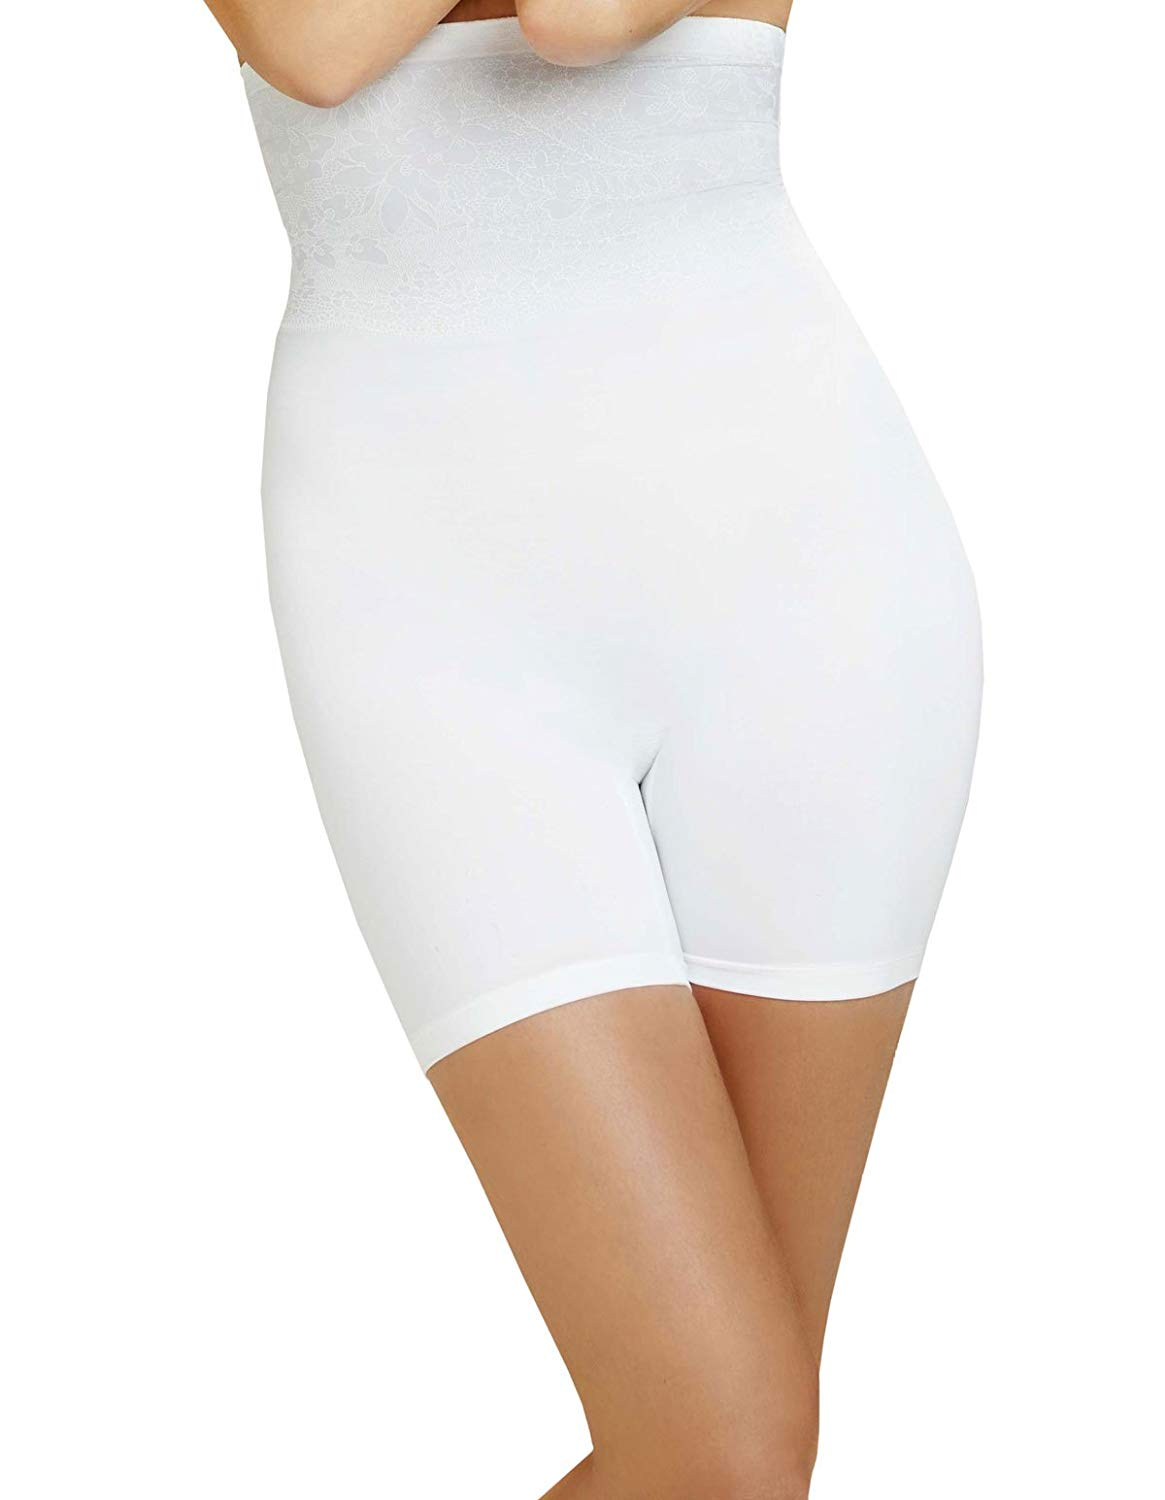 Body Wrap Shapewear White The Catwalk High-Waist Long Leg Panty 49590